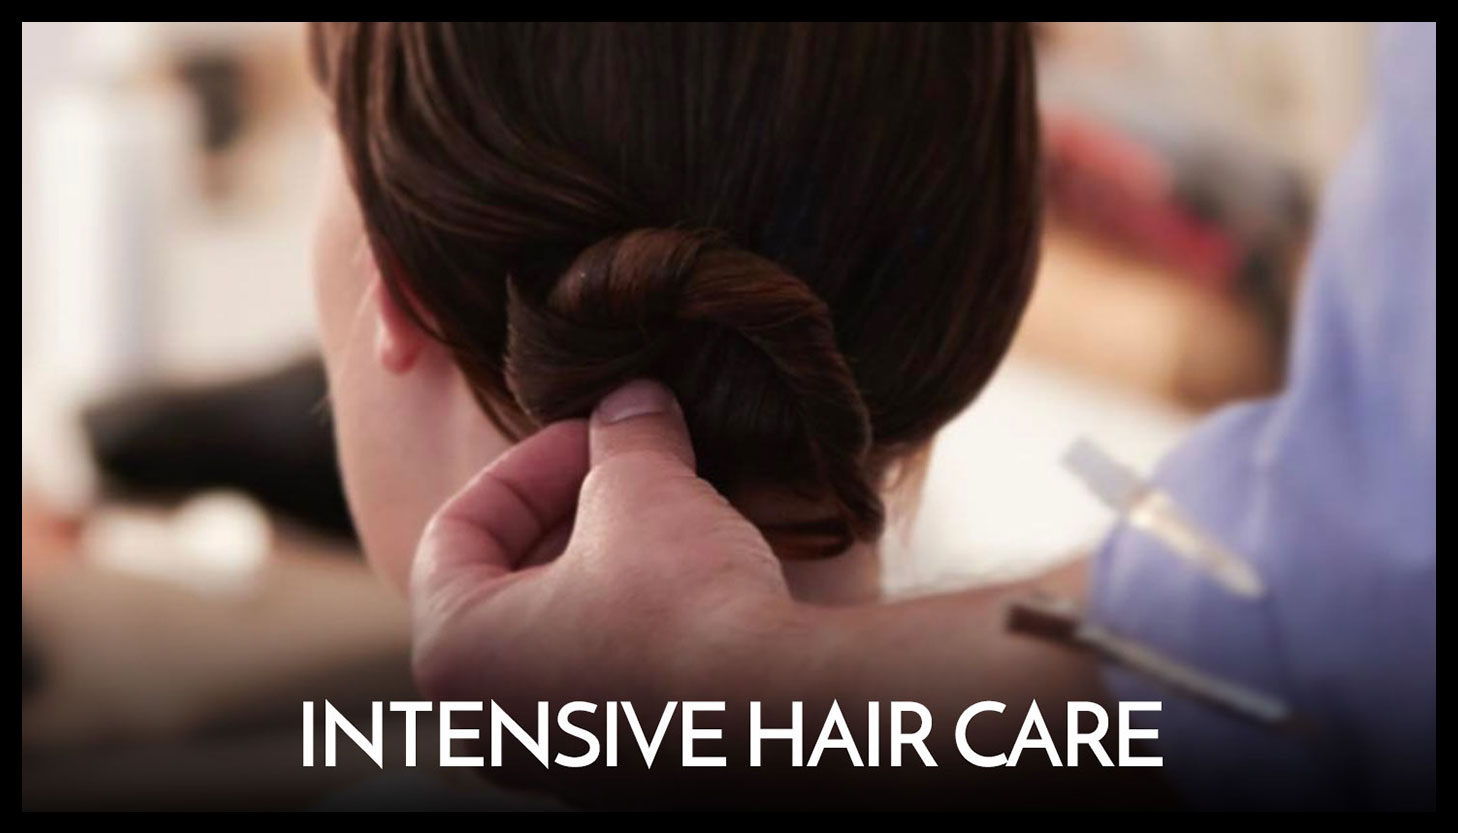 Intensive-hair-care-hover